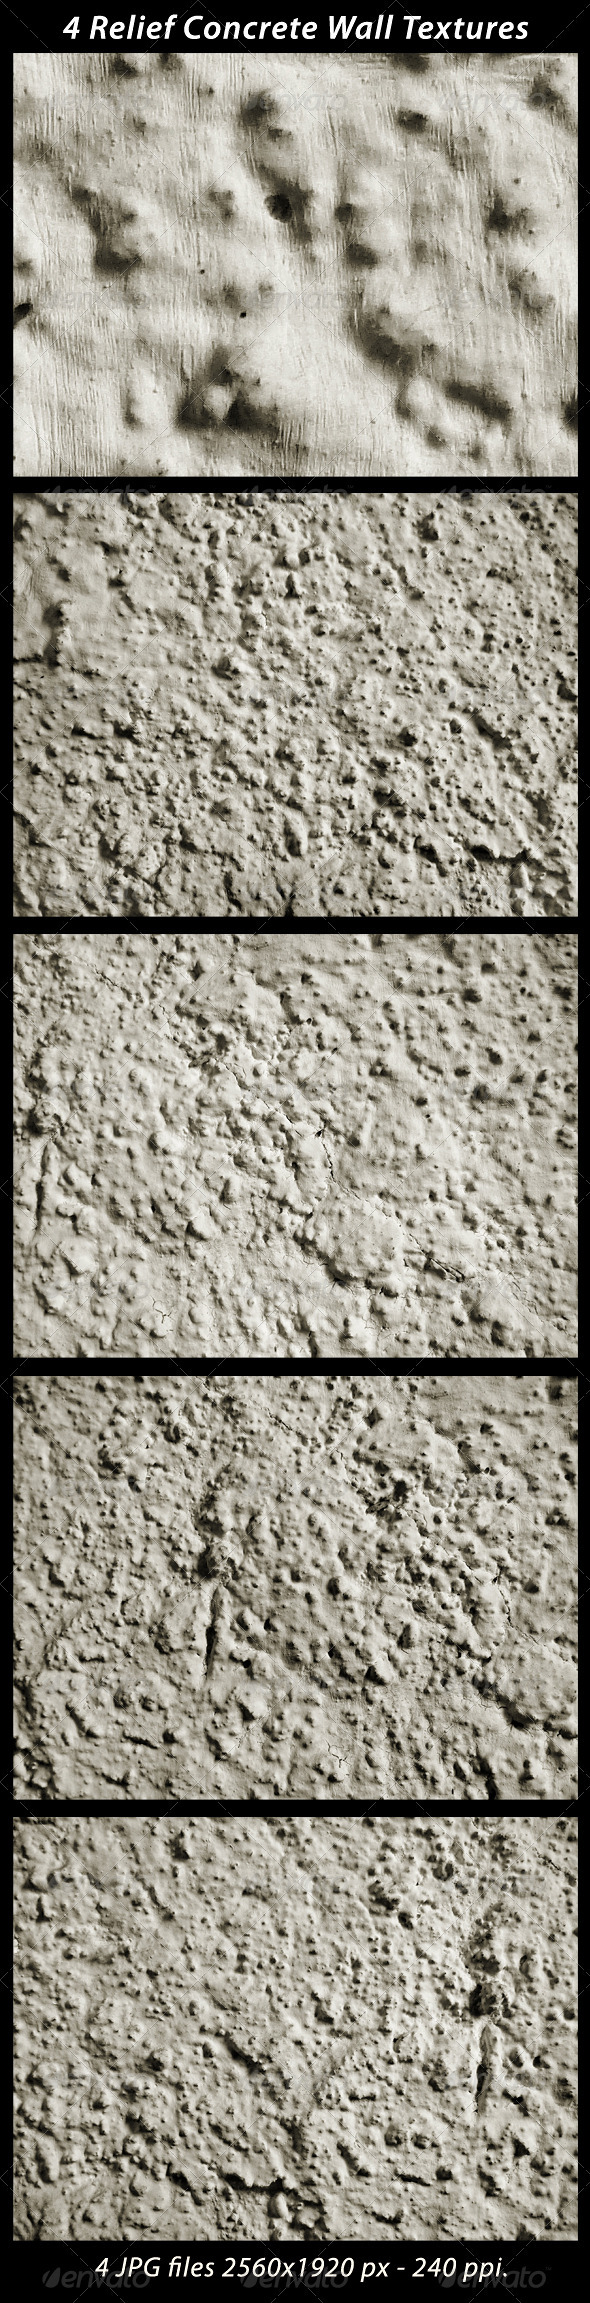 4 Relief Concrete Wall Textures - Concrete Textures